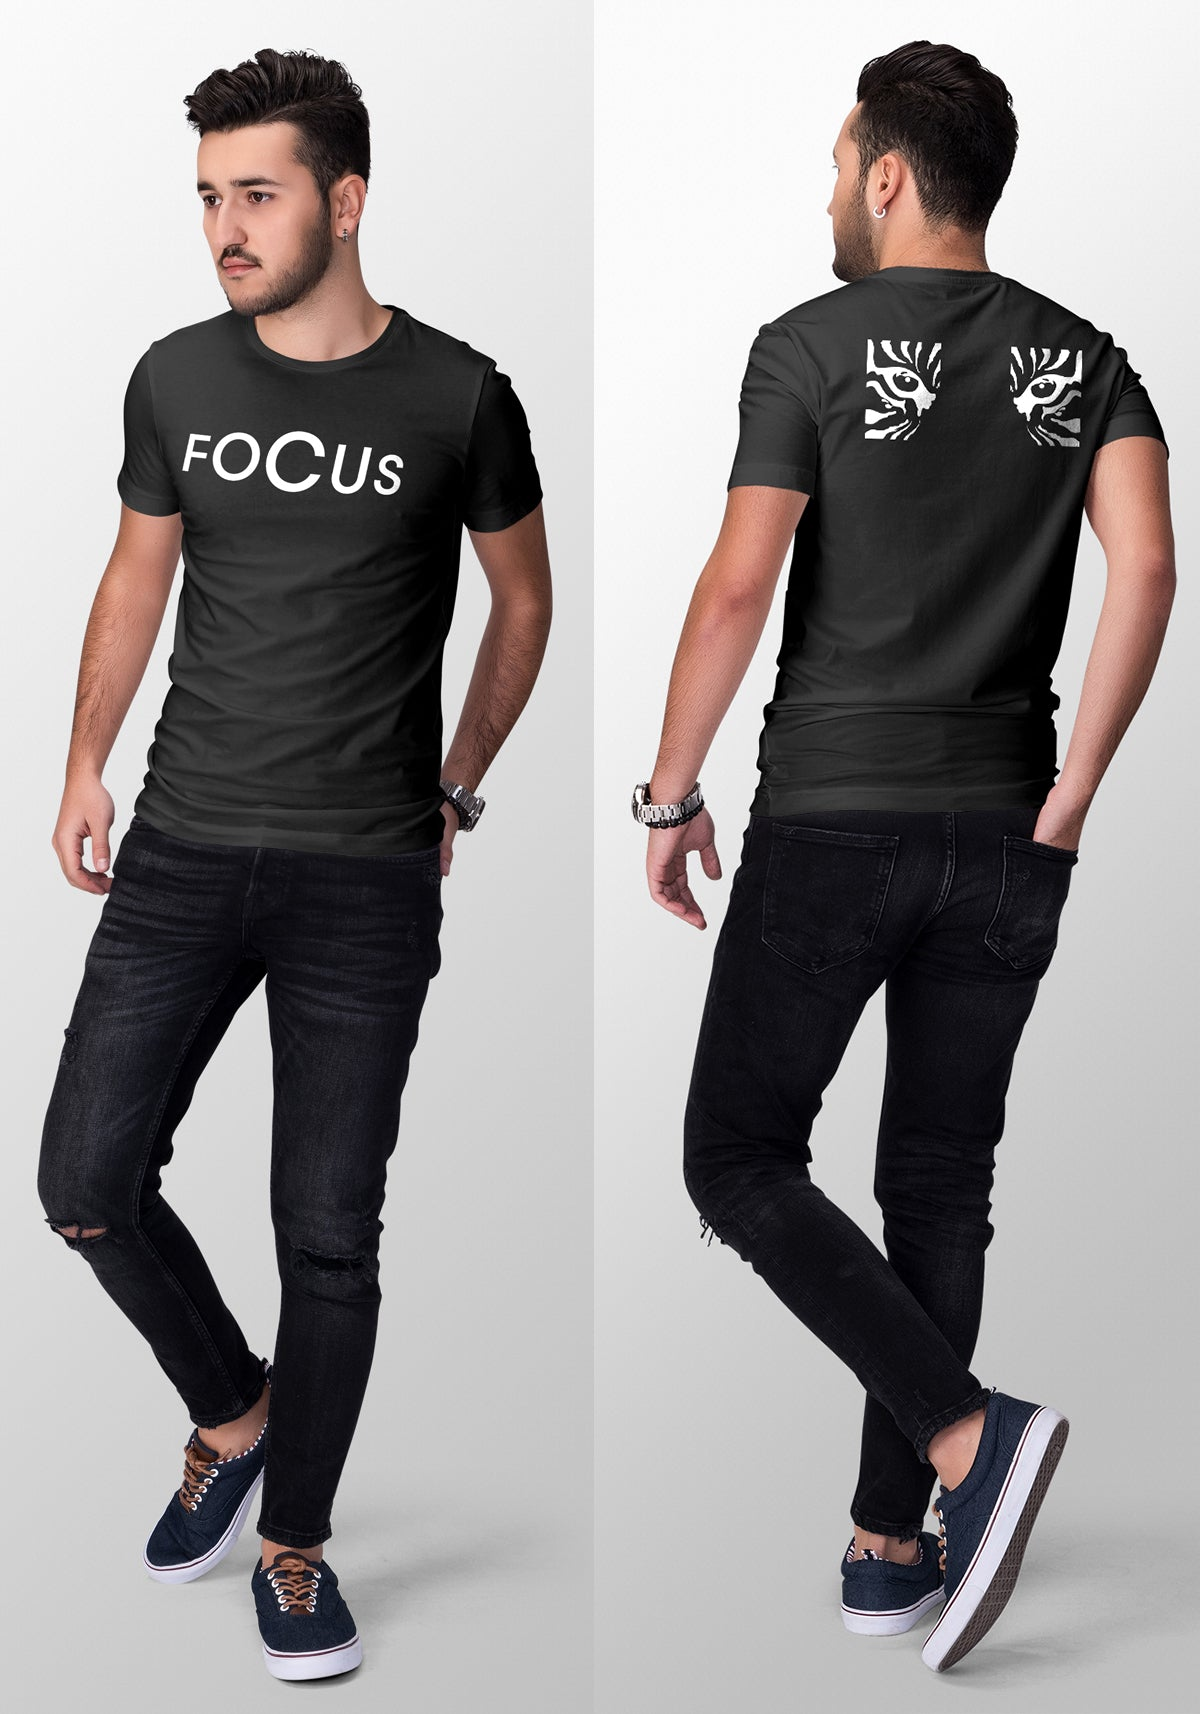 Focus Crew Neck Men's